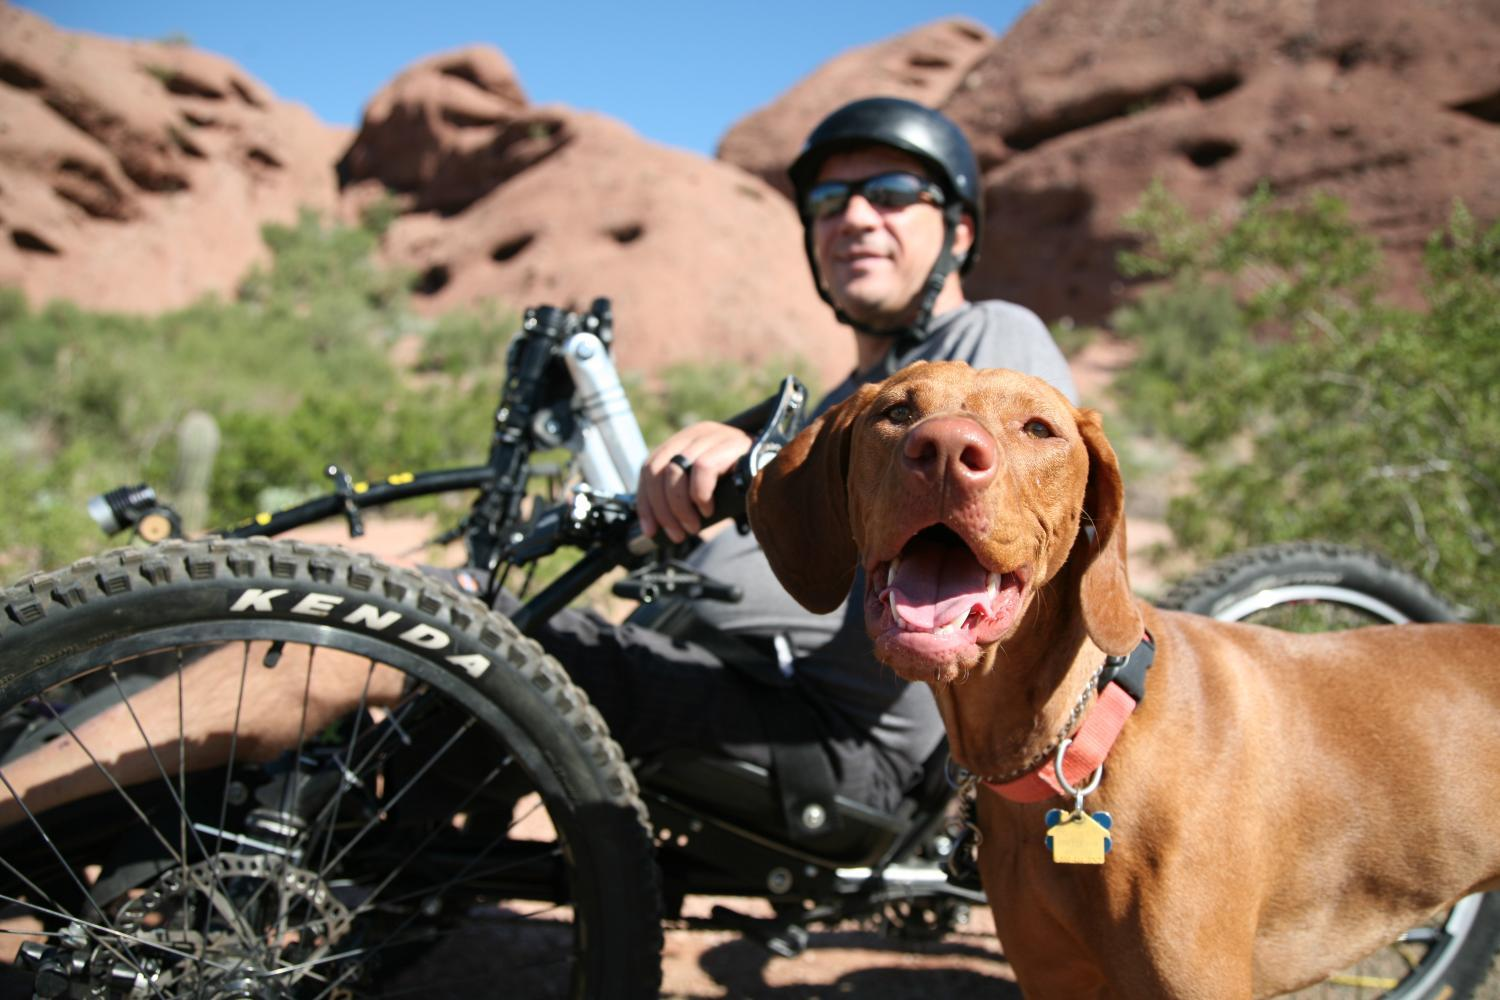 A Man outsite near Arizona mountains with his dog. He is wearing a helmet and using an adaptive hand cycle.